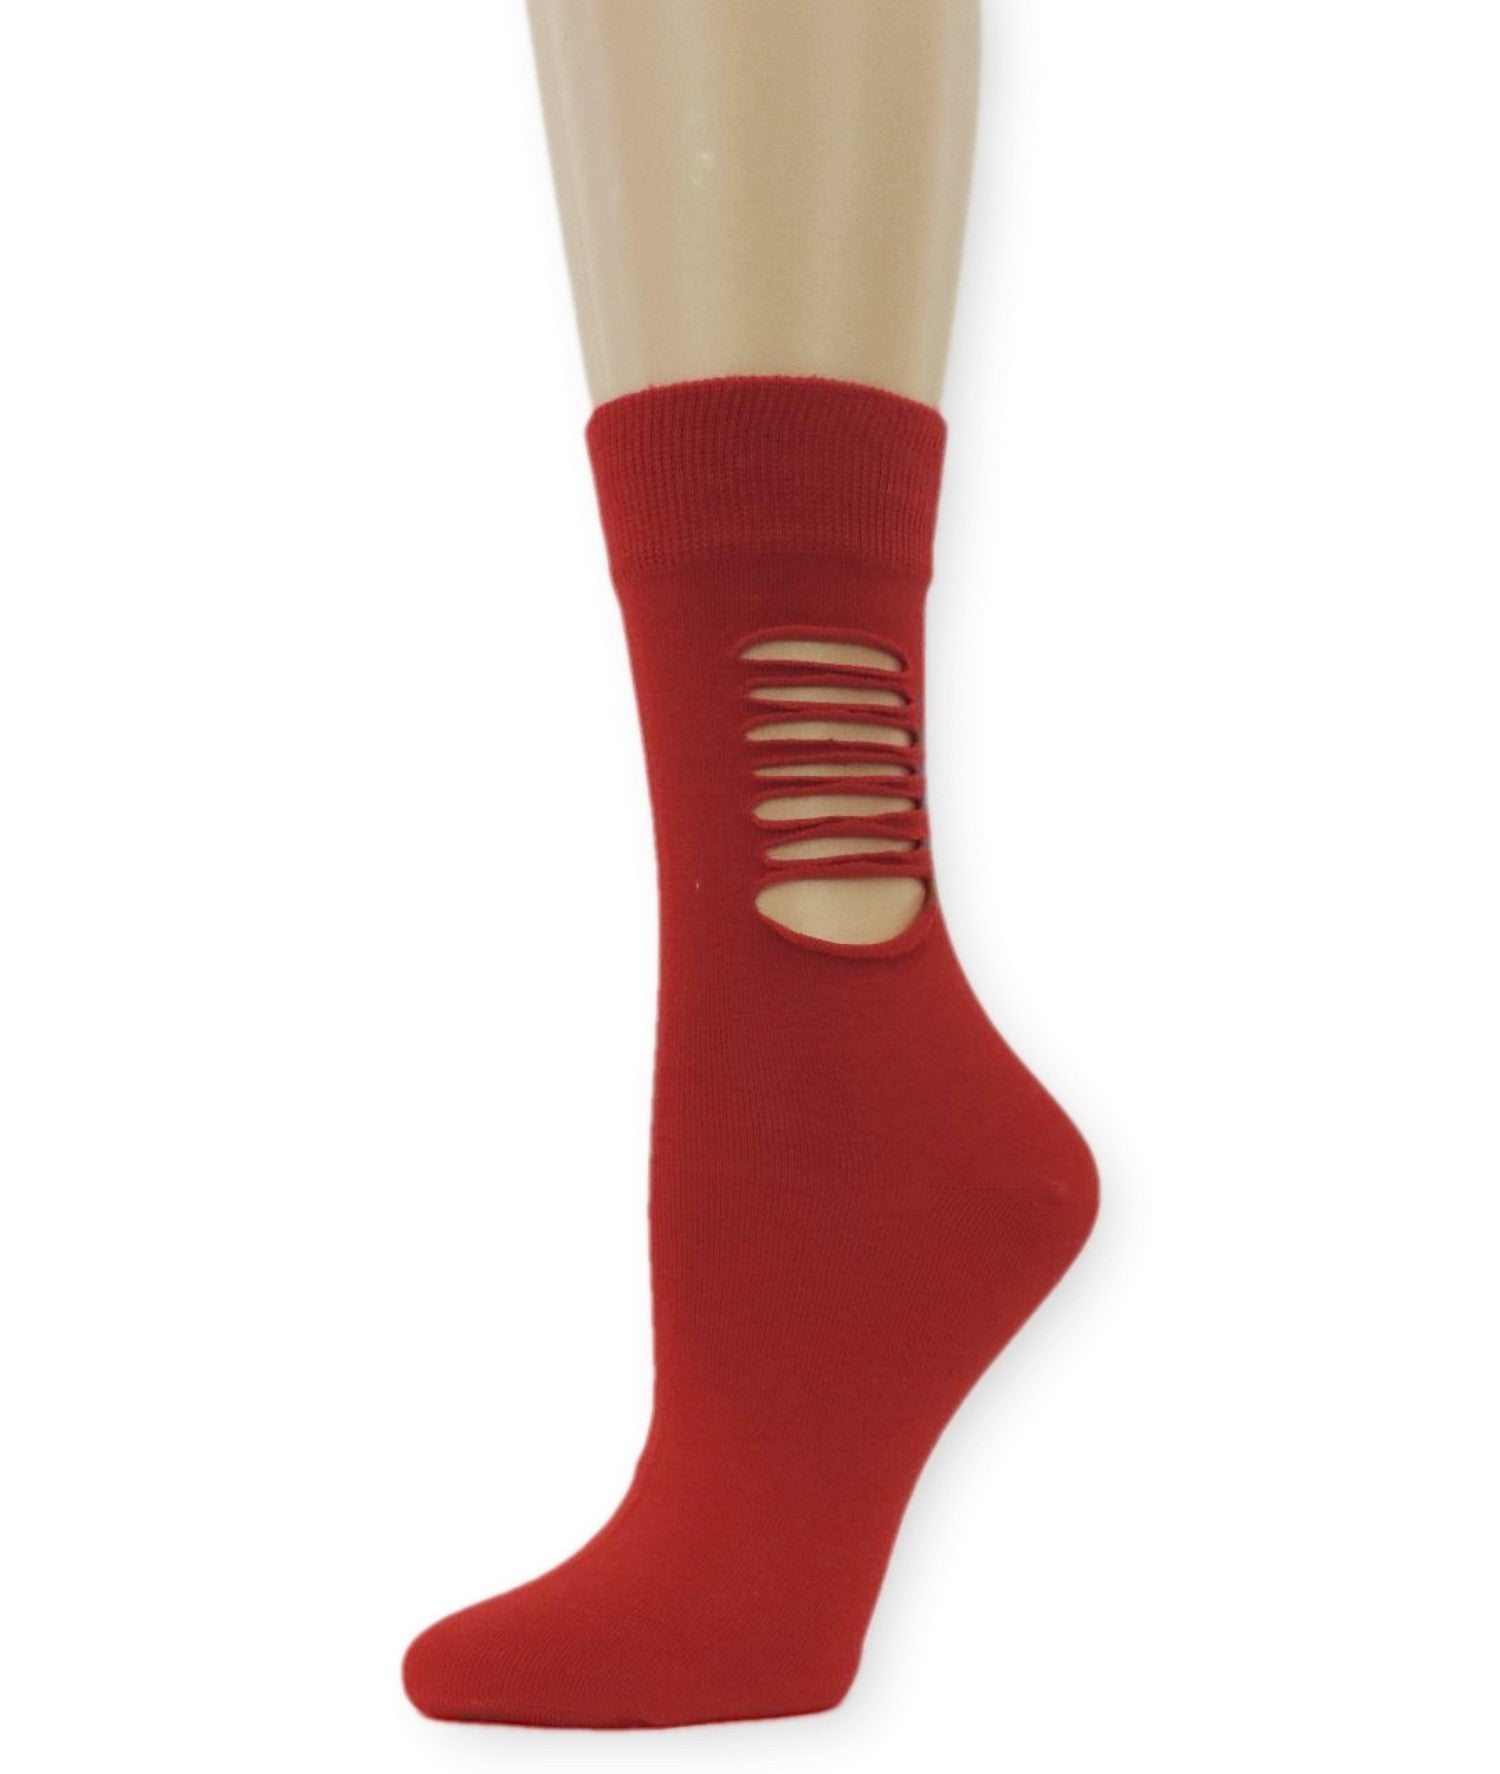 Ripped Bright Red Cotton Socks - Global Trendz Fashion®